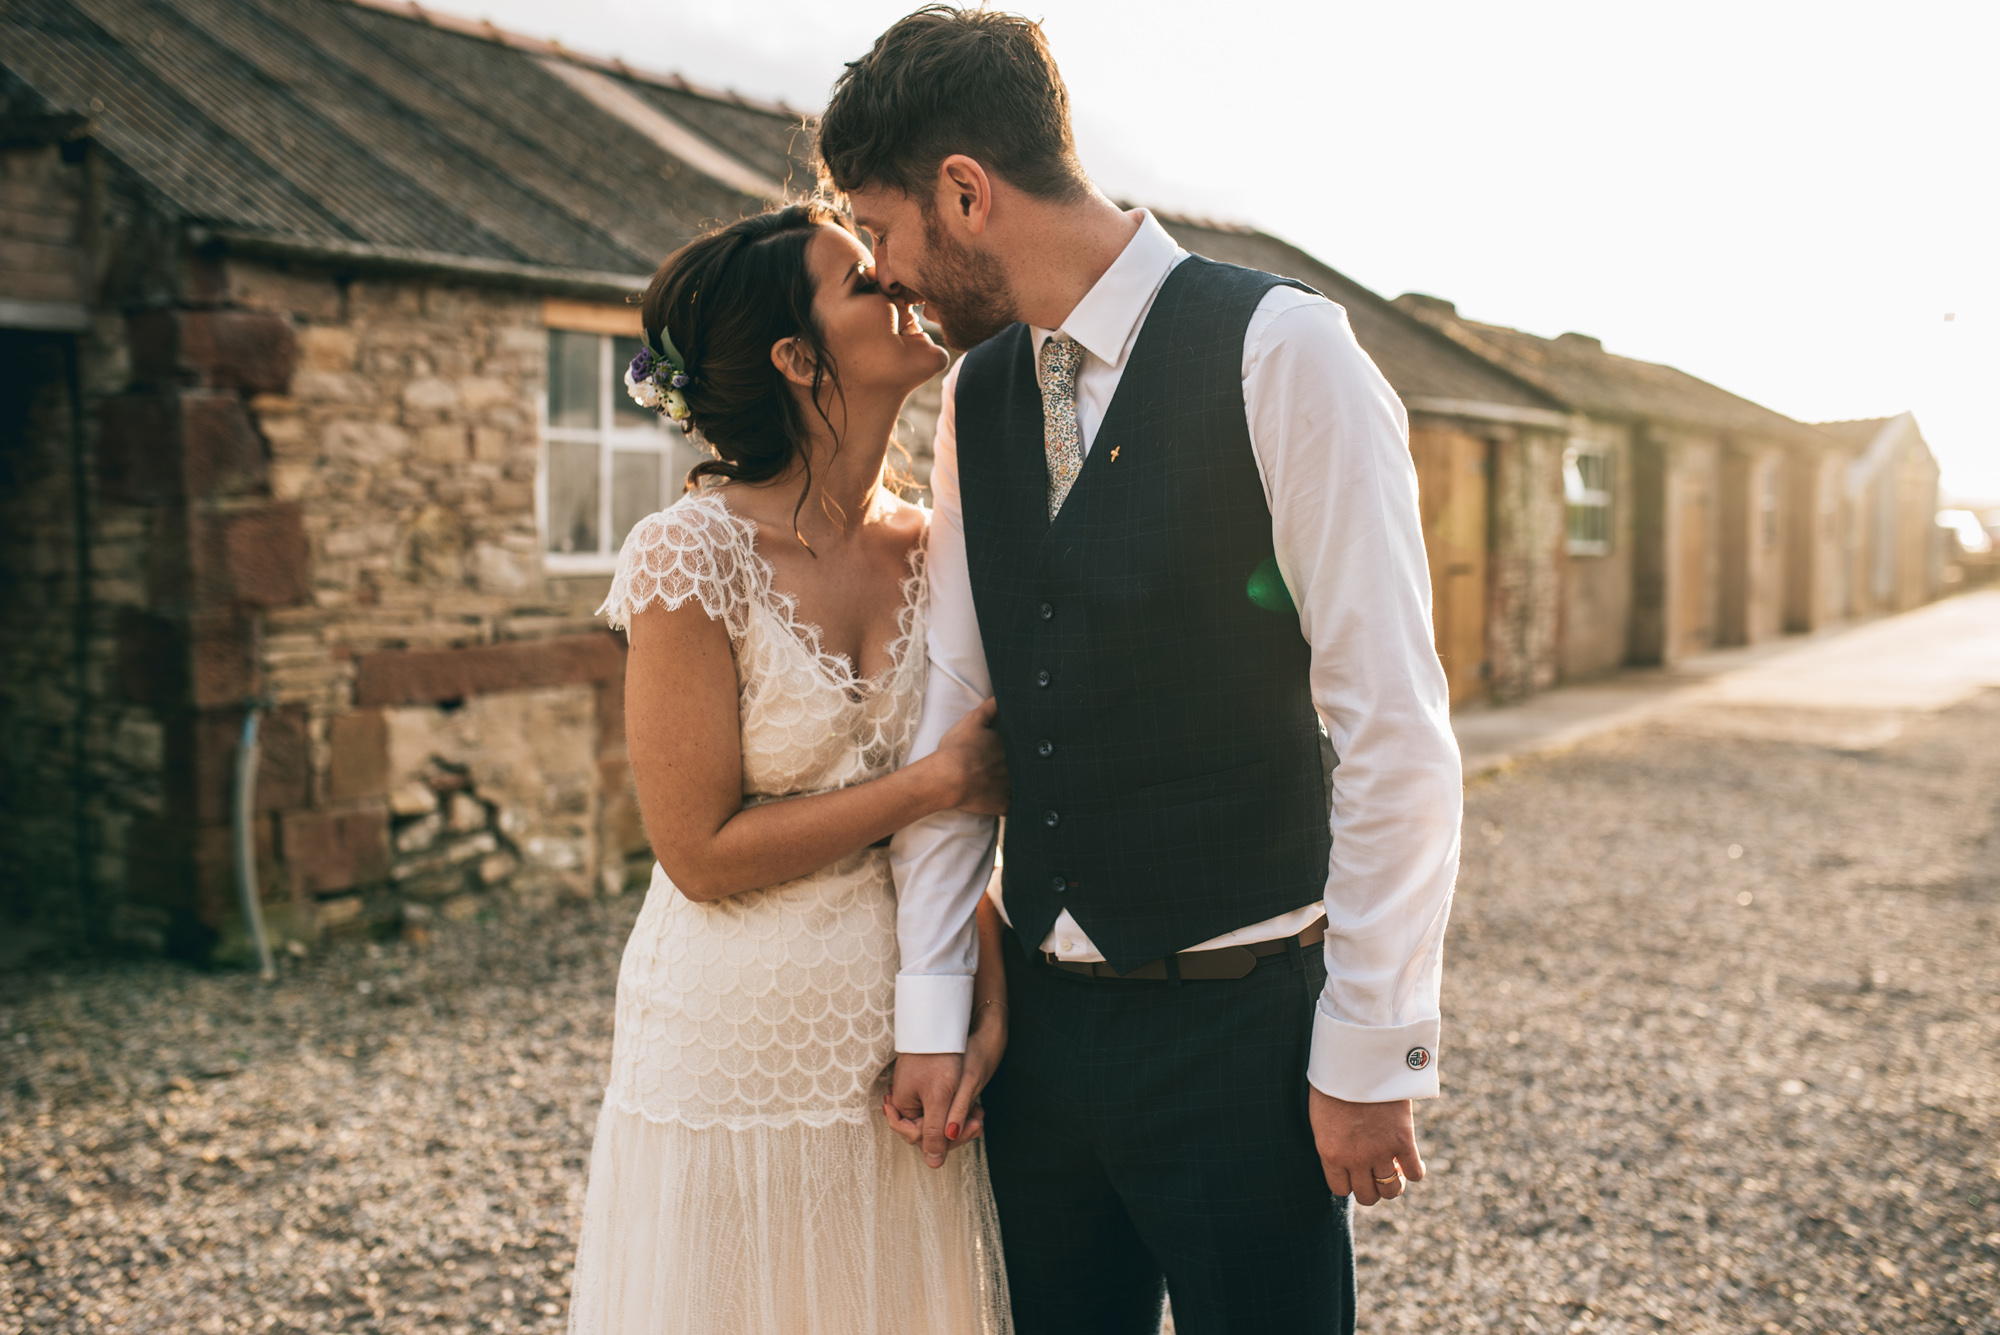 Kate-Beaumont-Sheffield-Lucy-Bohemian-Lace-Dress-Barn-Wedding-Cumbria-44.jpg